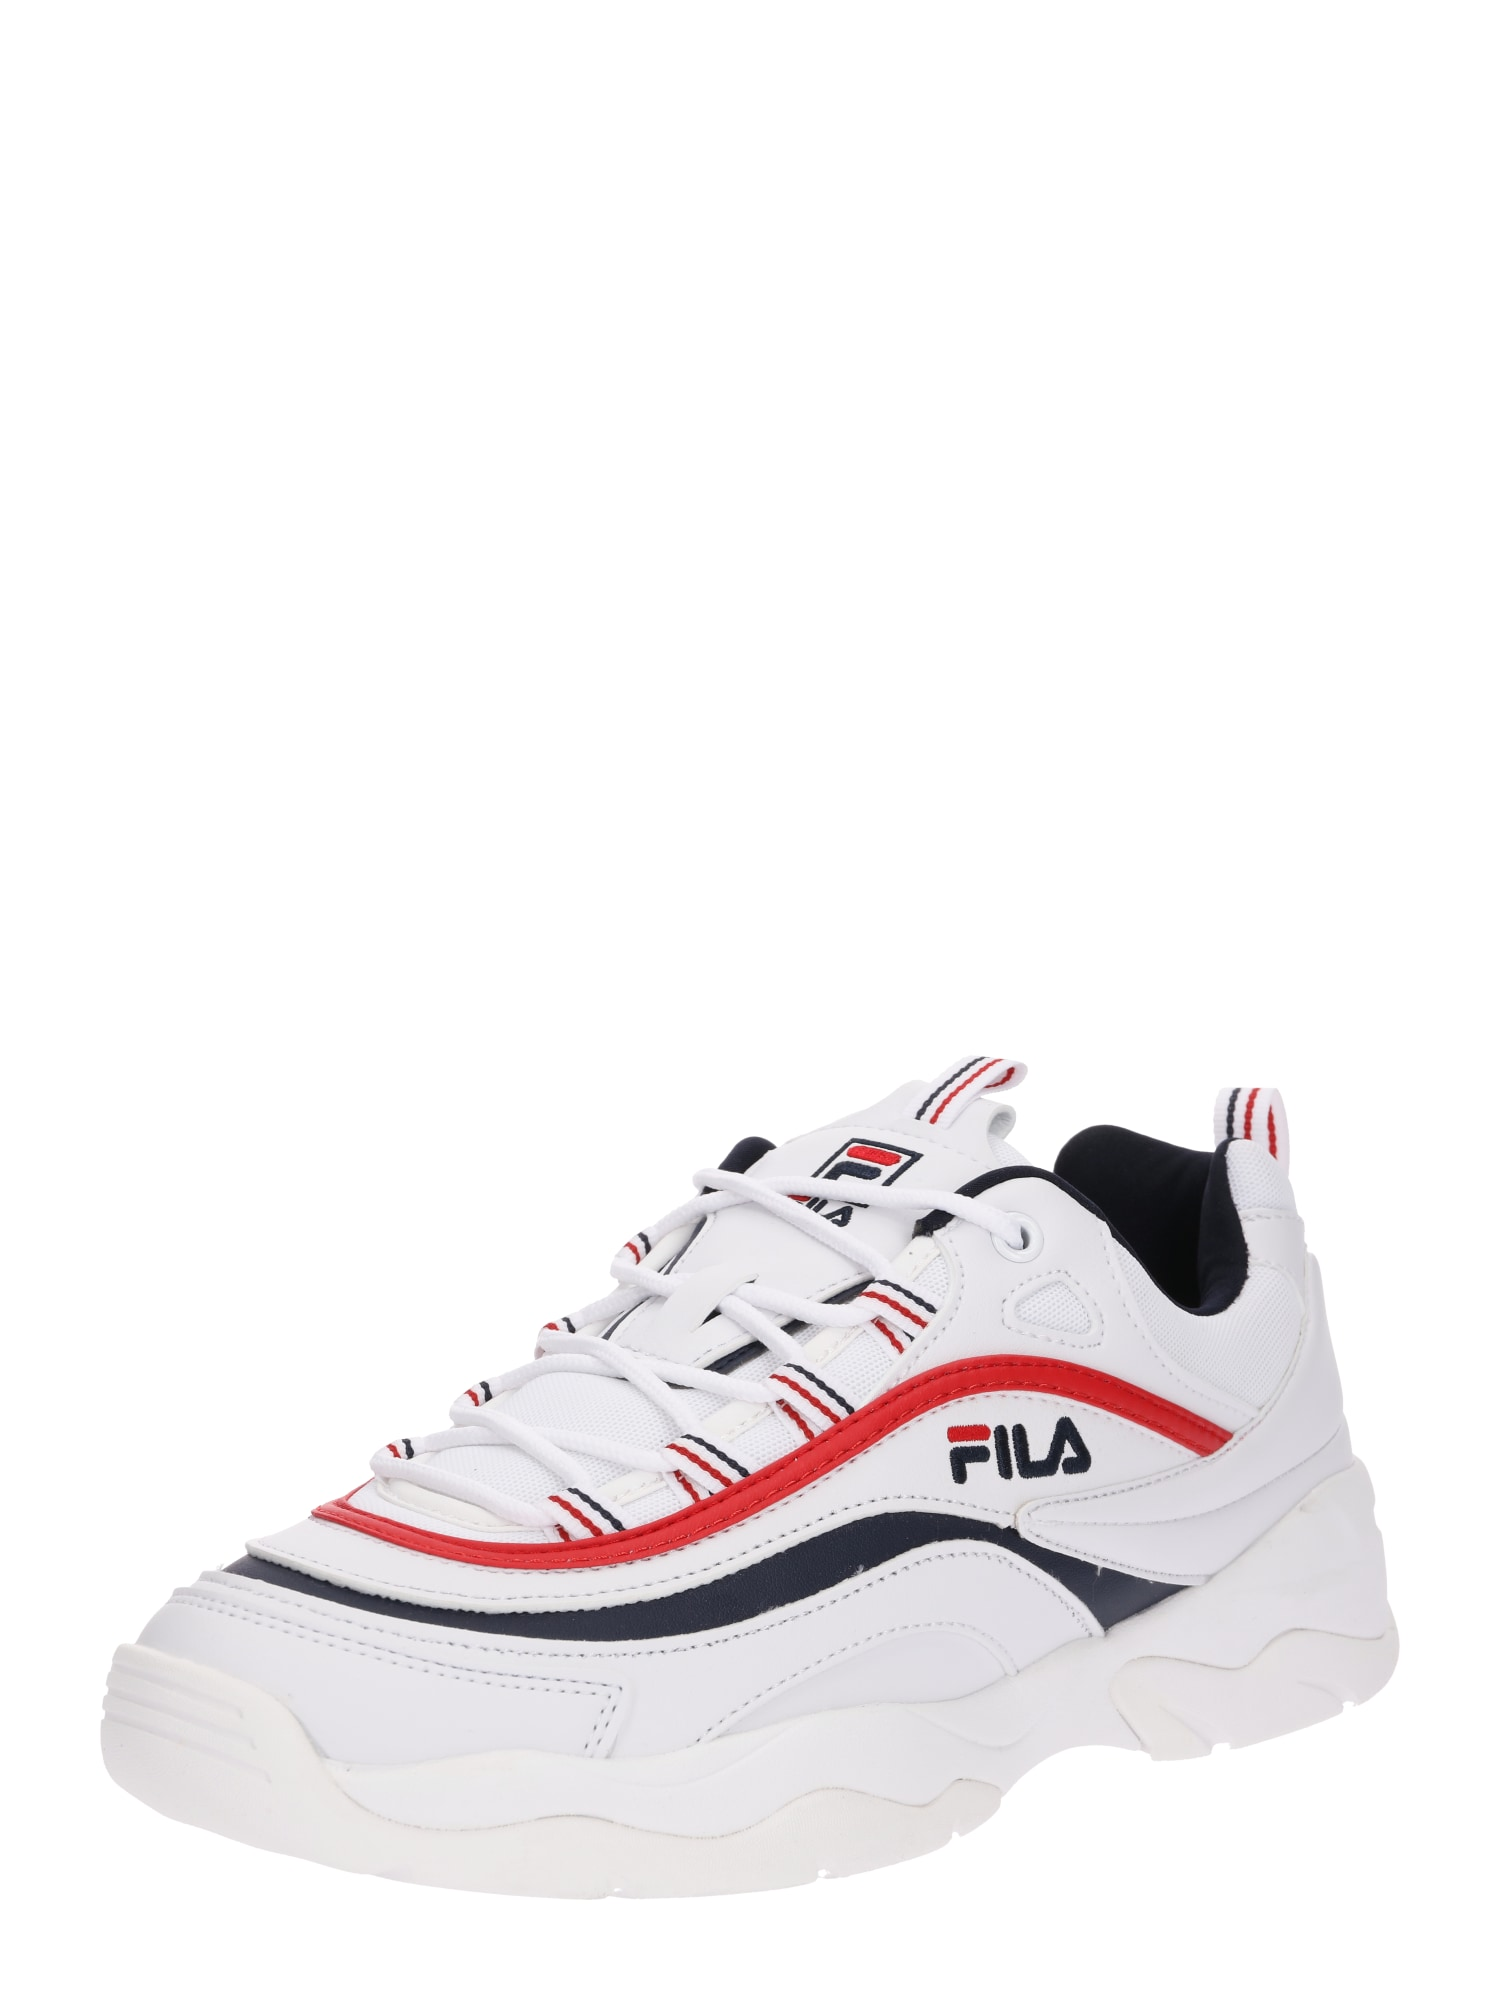 FILA, Heren Sneakers laag 'Ray Low', nachtblauw / rood / wit